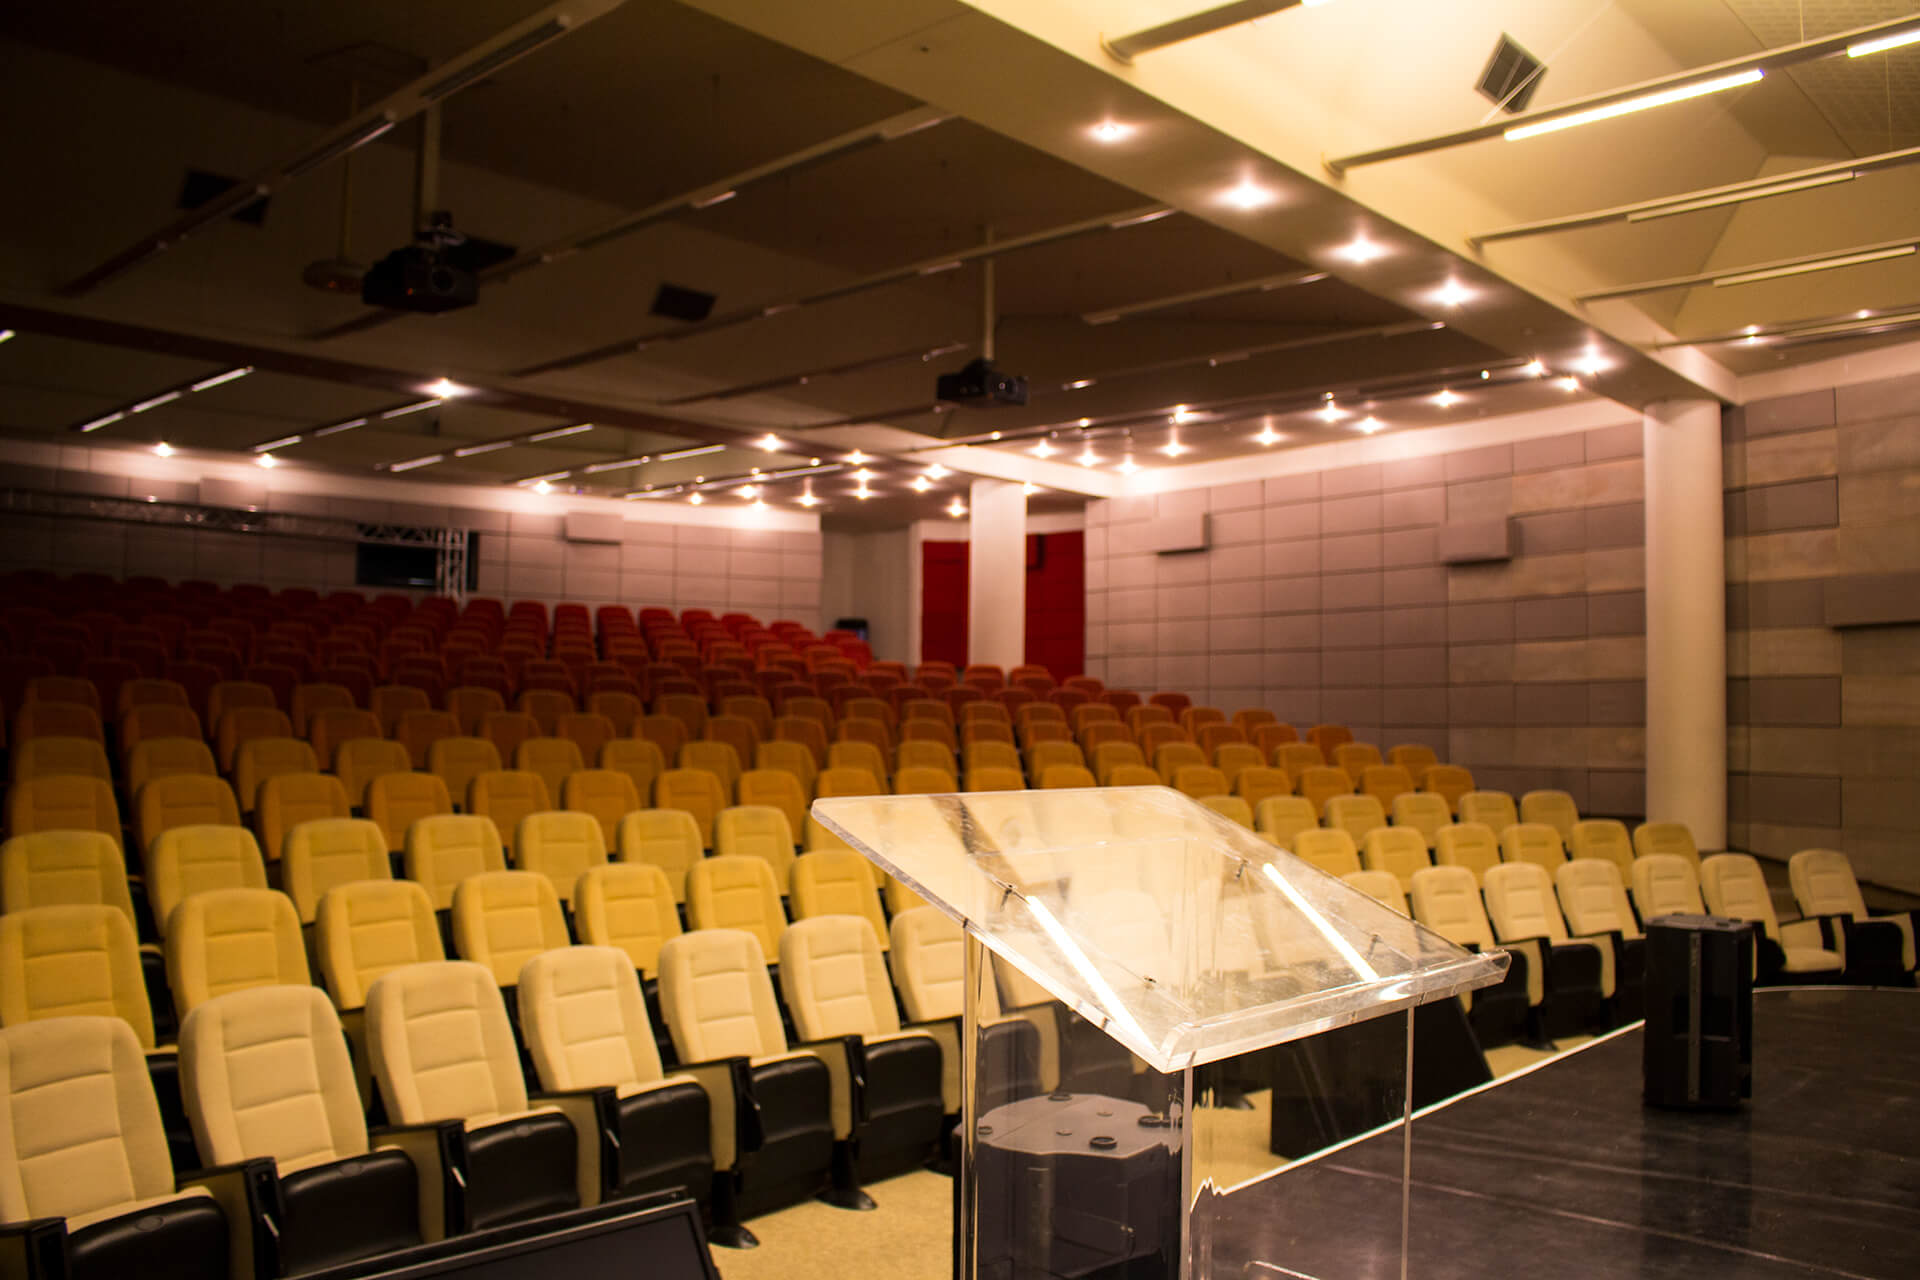 The-Campus-Bryanston-Auditorium-02